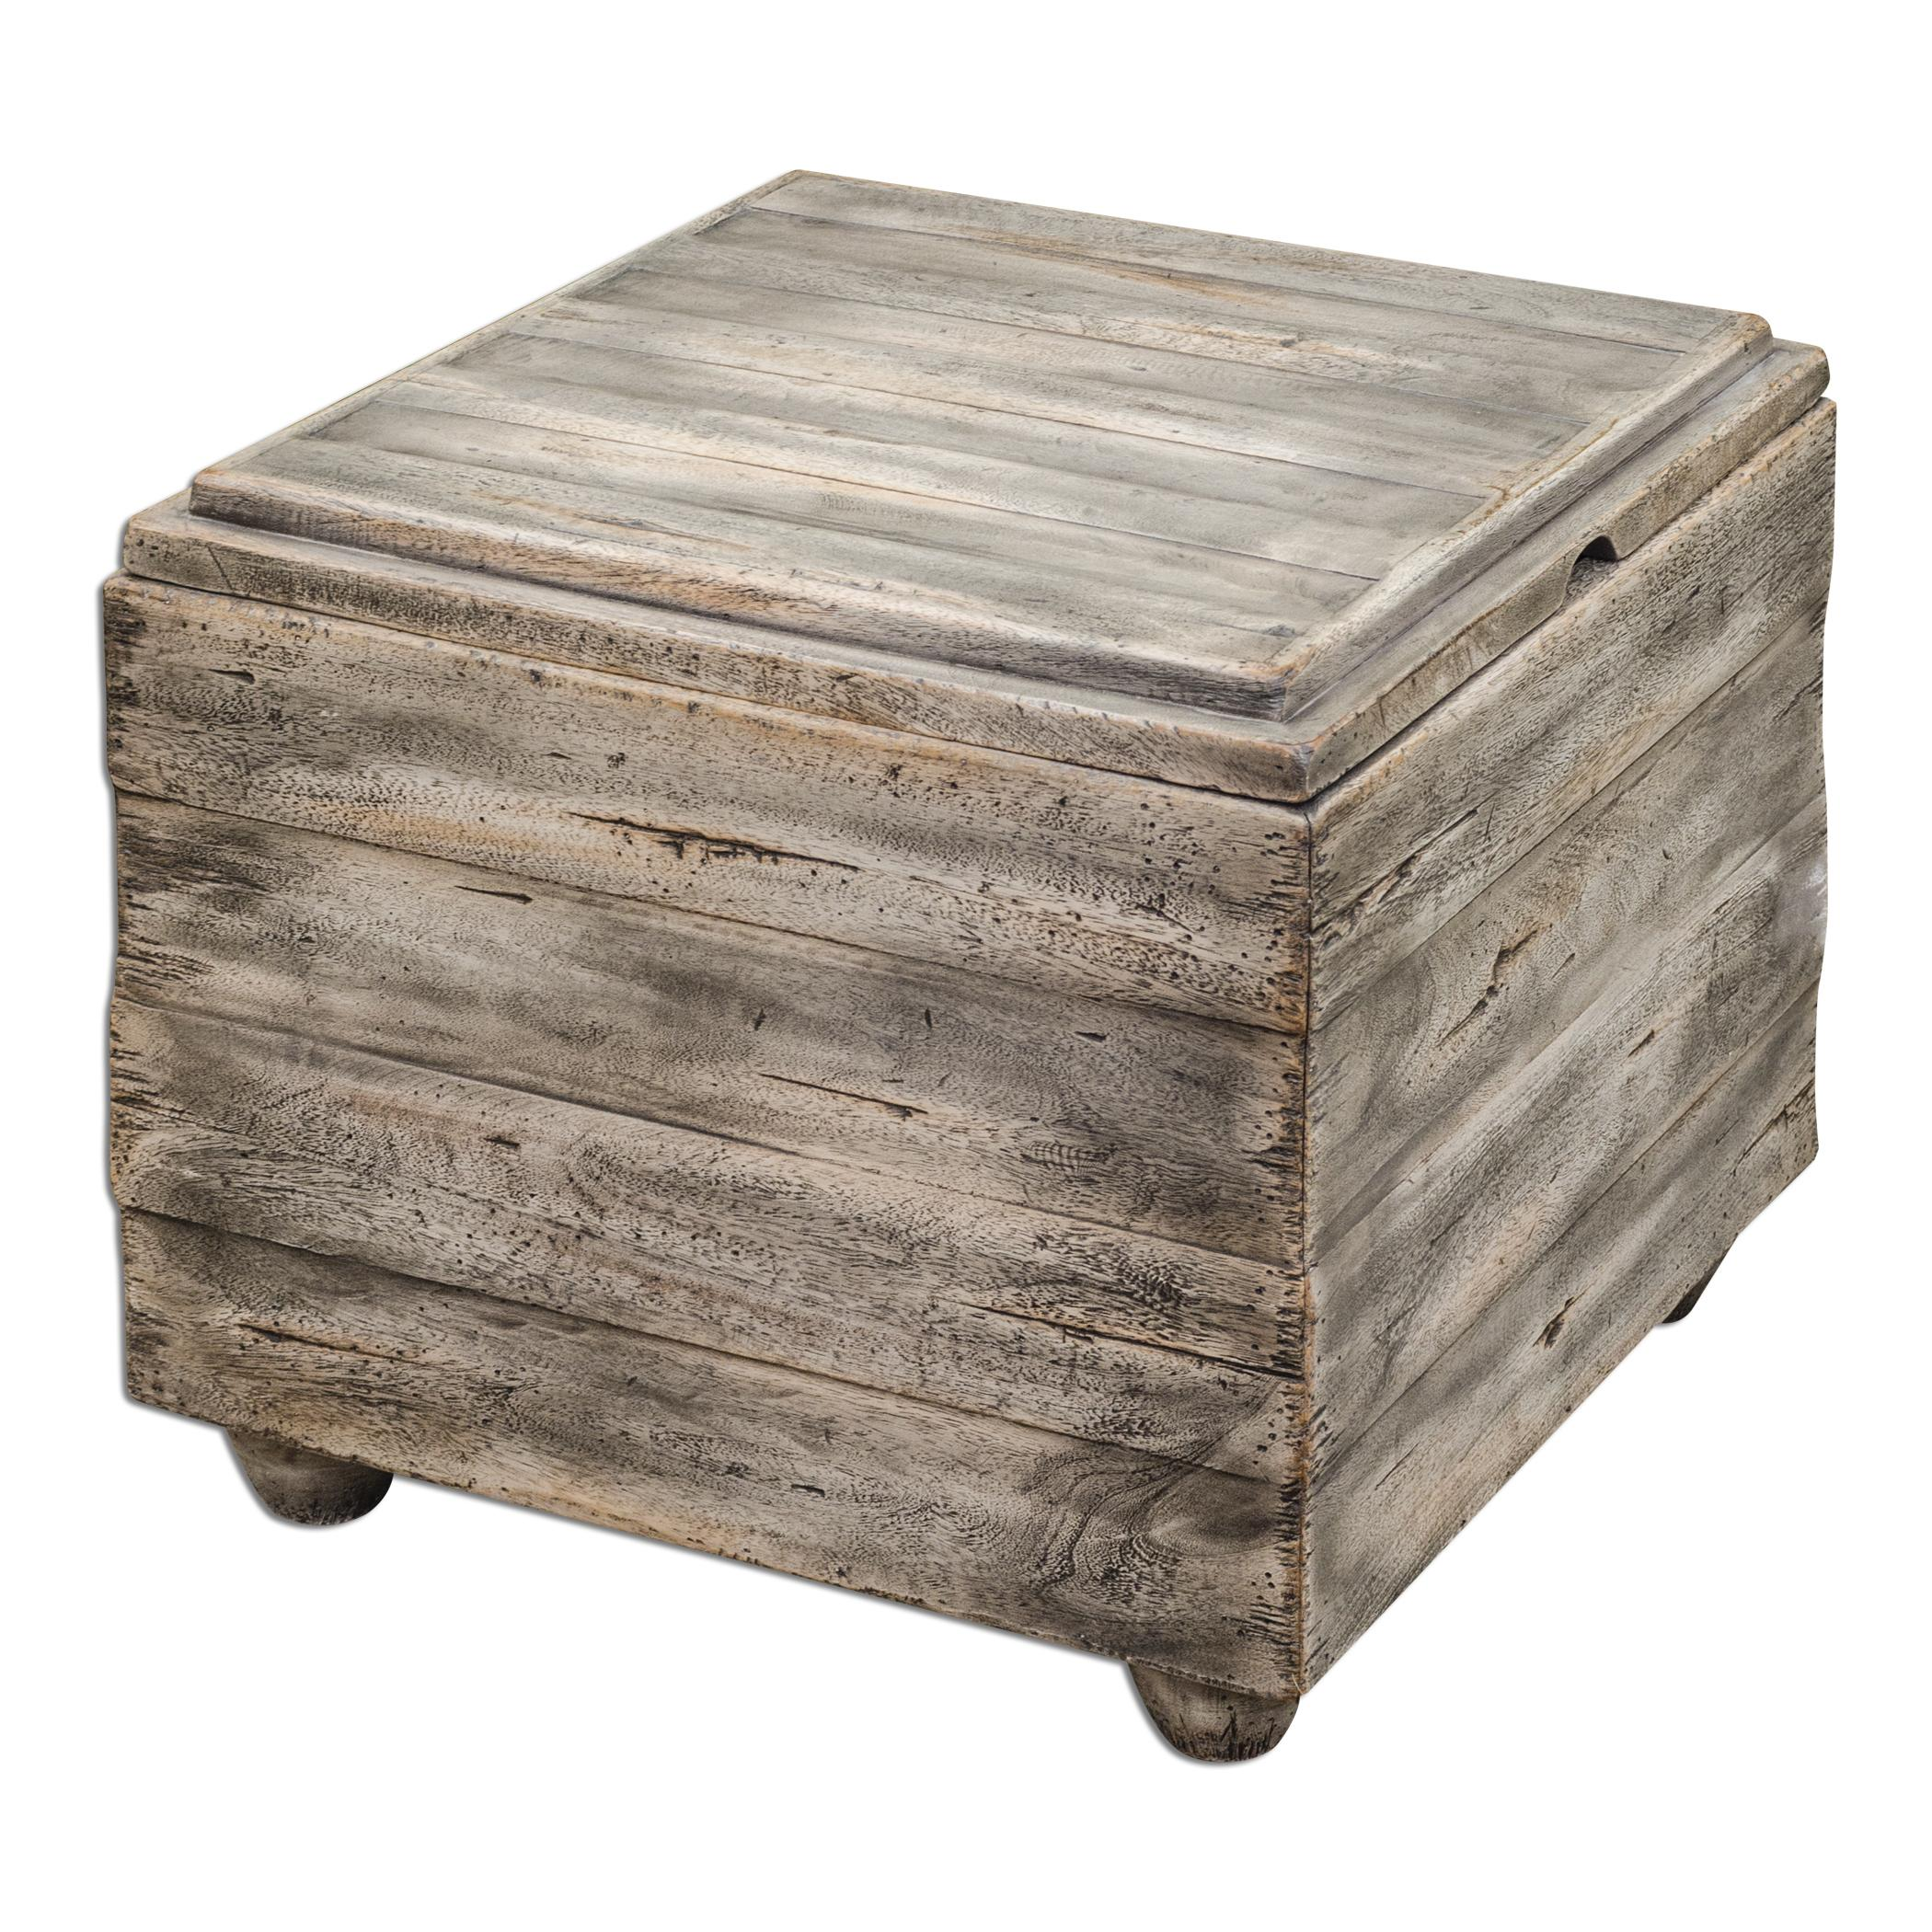 Uttermost Accent Furniture Avner Wooden Cube Table - Item Number: 25603